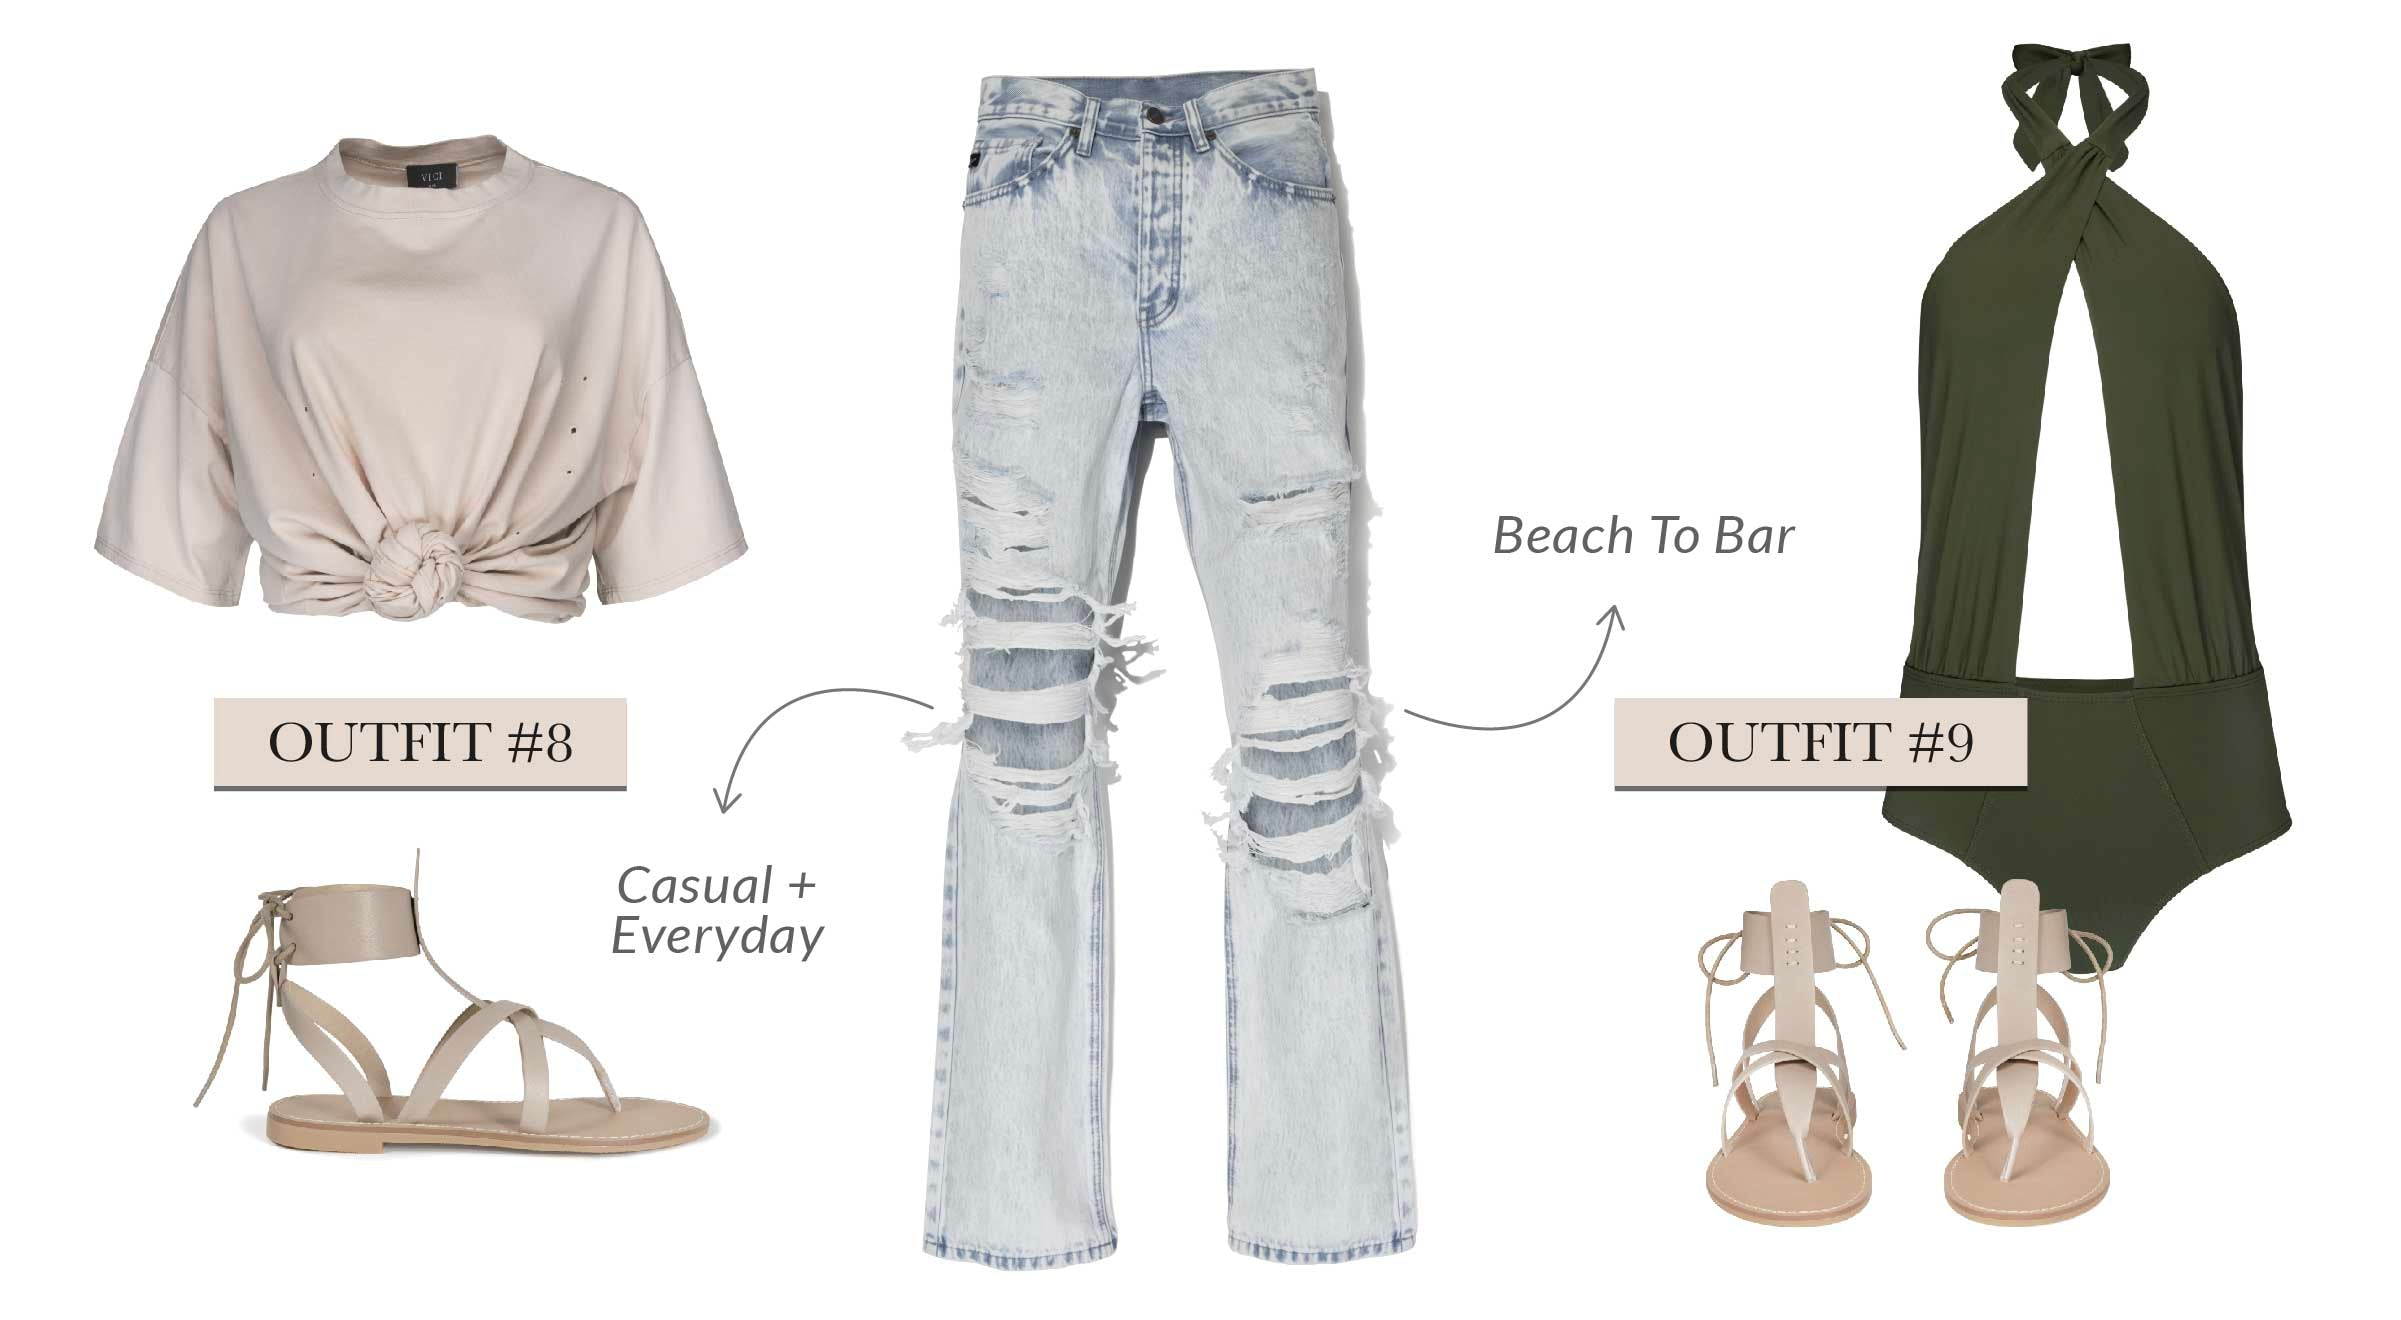 We are sending a warm welcome to all of the cute 90's styles creeping their way back in (with the exception of low rise jeans, goodbye.) This reimagined style will be the only pair of denim you'll need to pack for your weekend away!